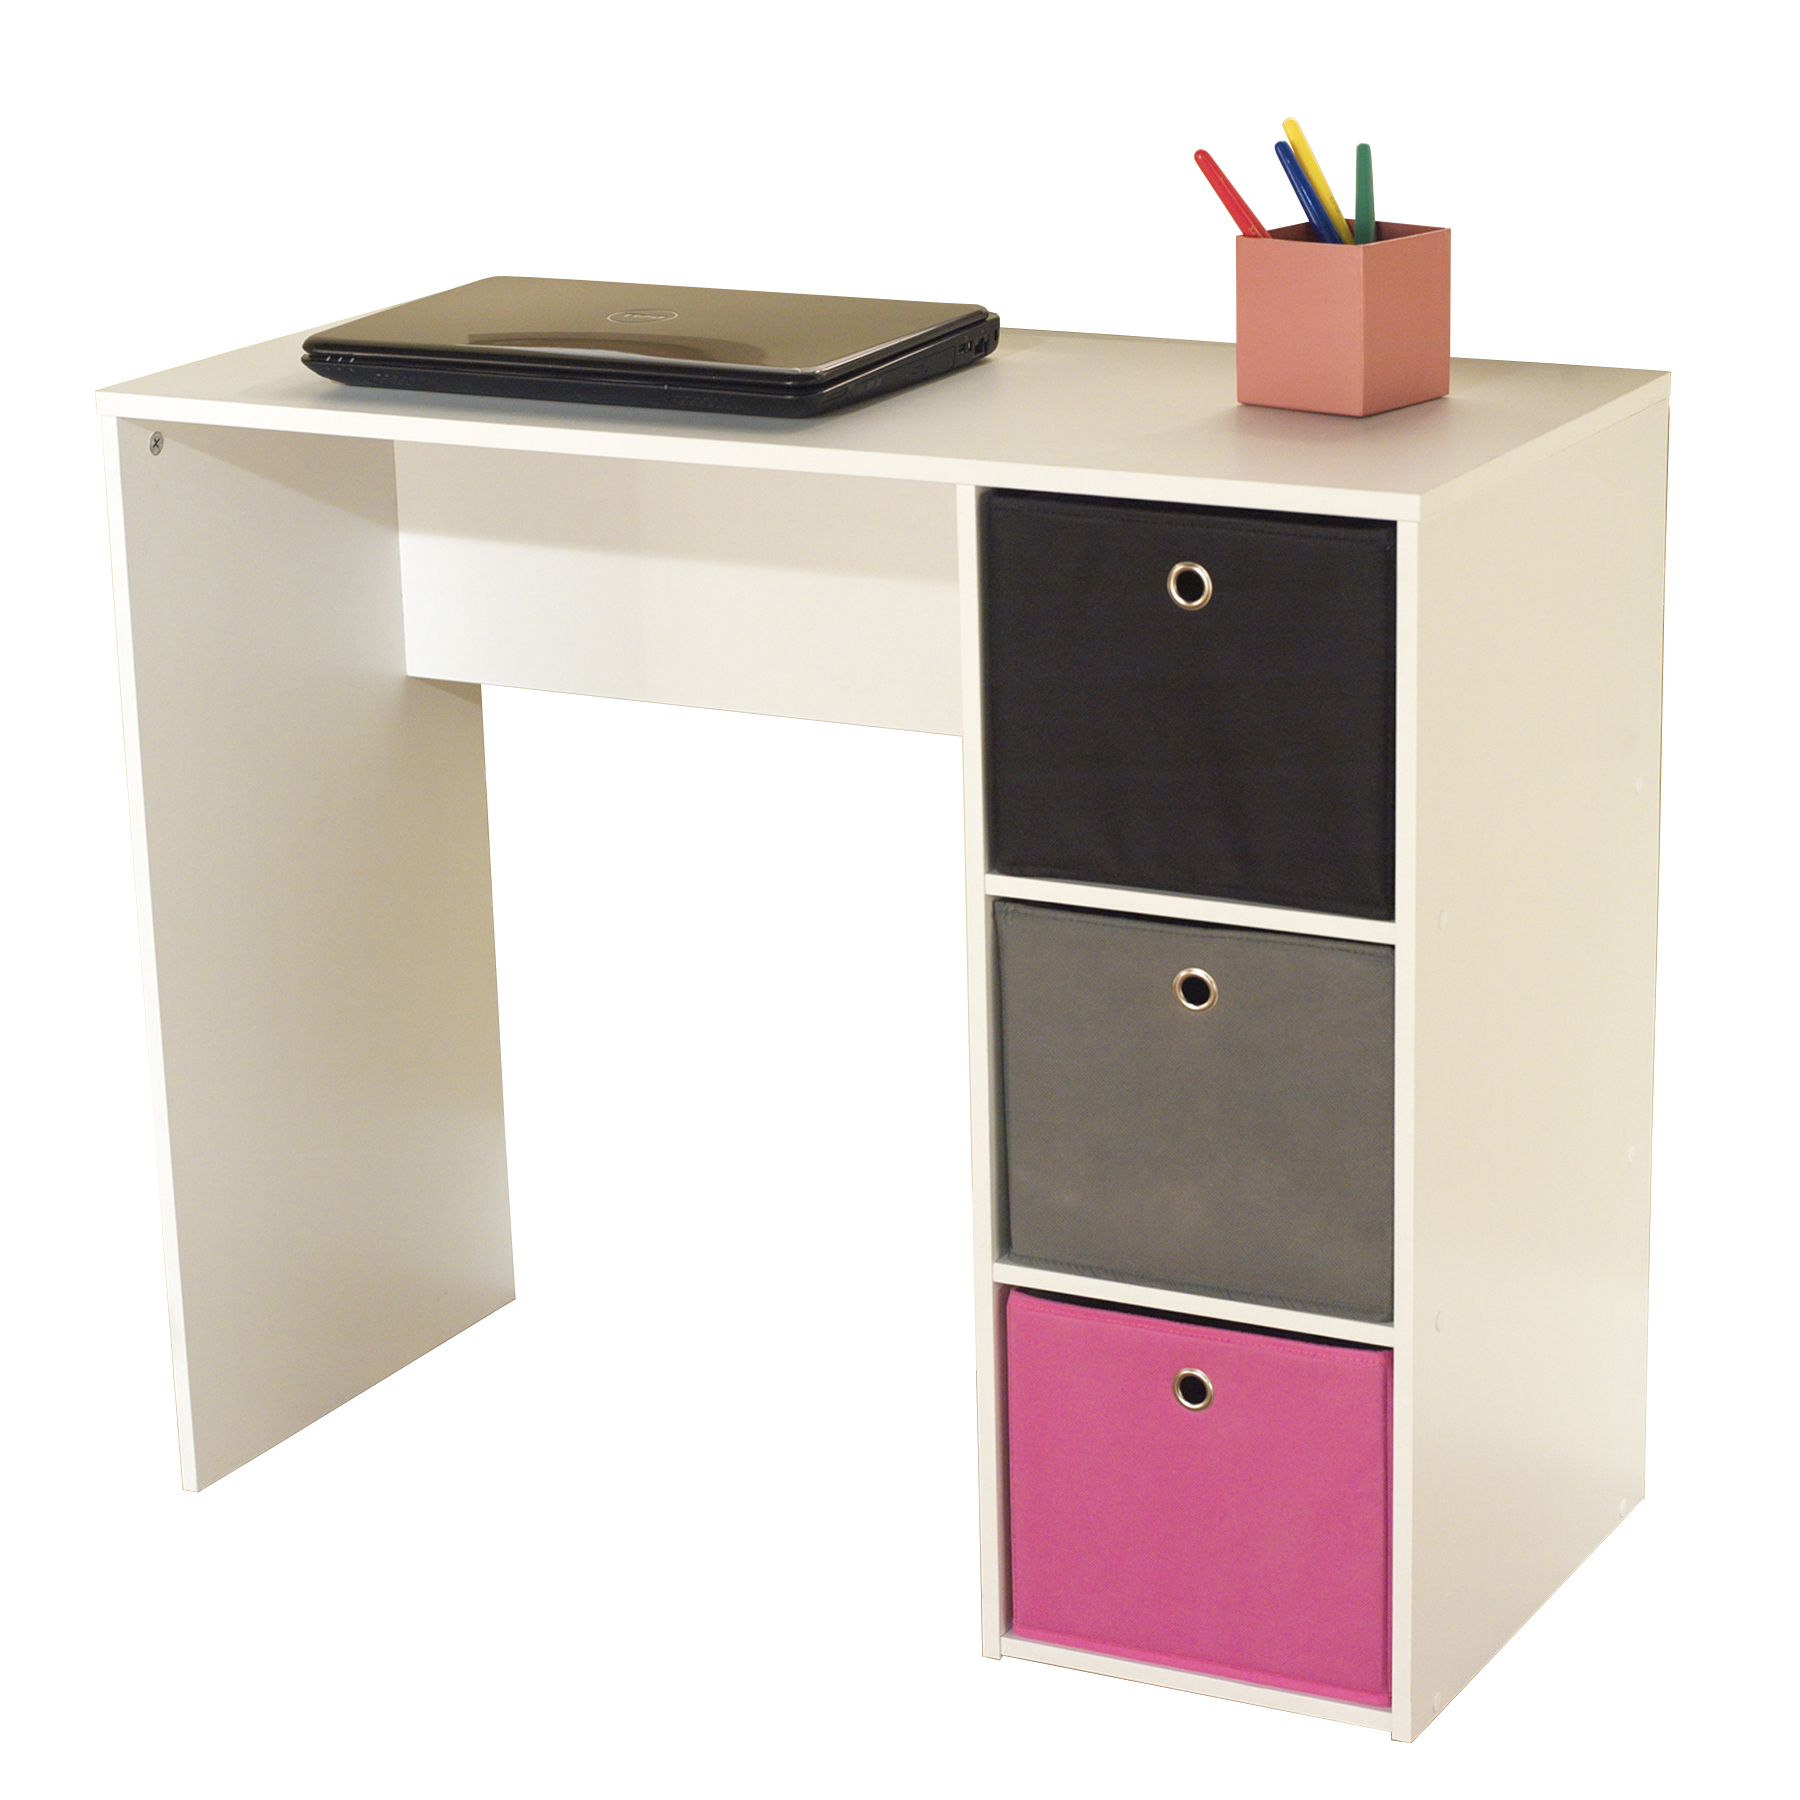 Attrayant Kids Desk With Three Fabric Storage Bins, Multiple Colors